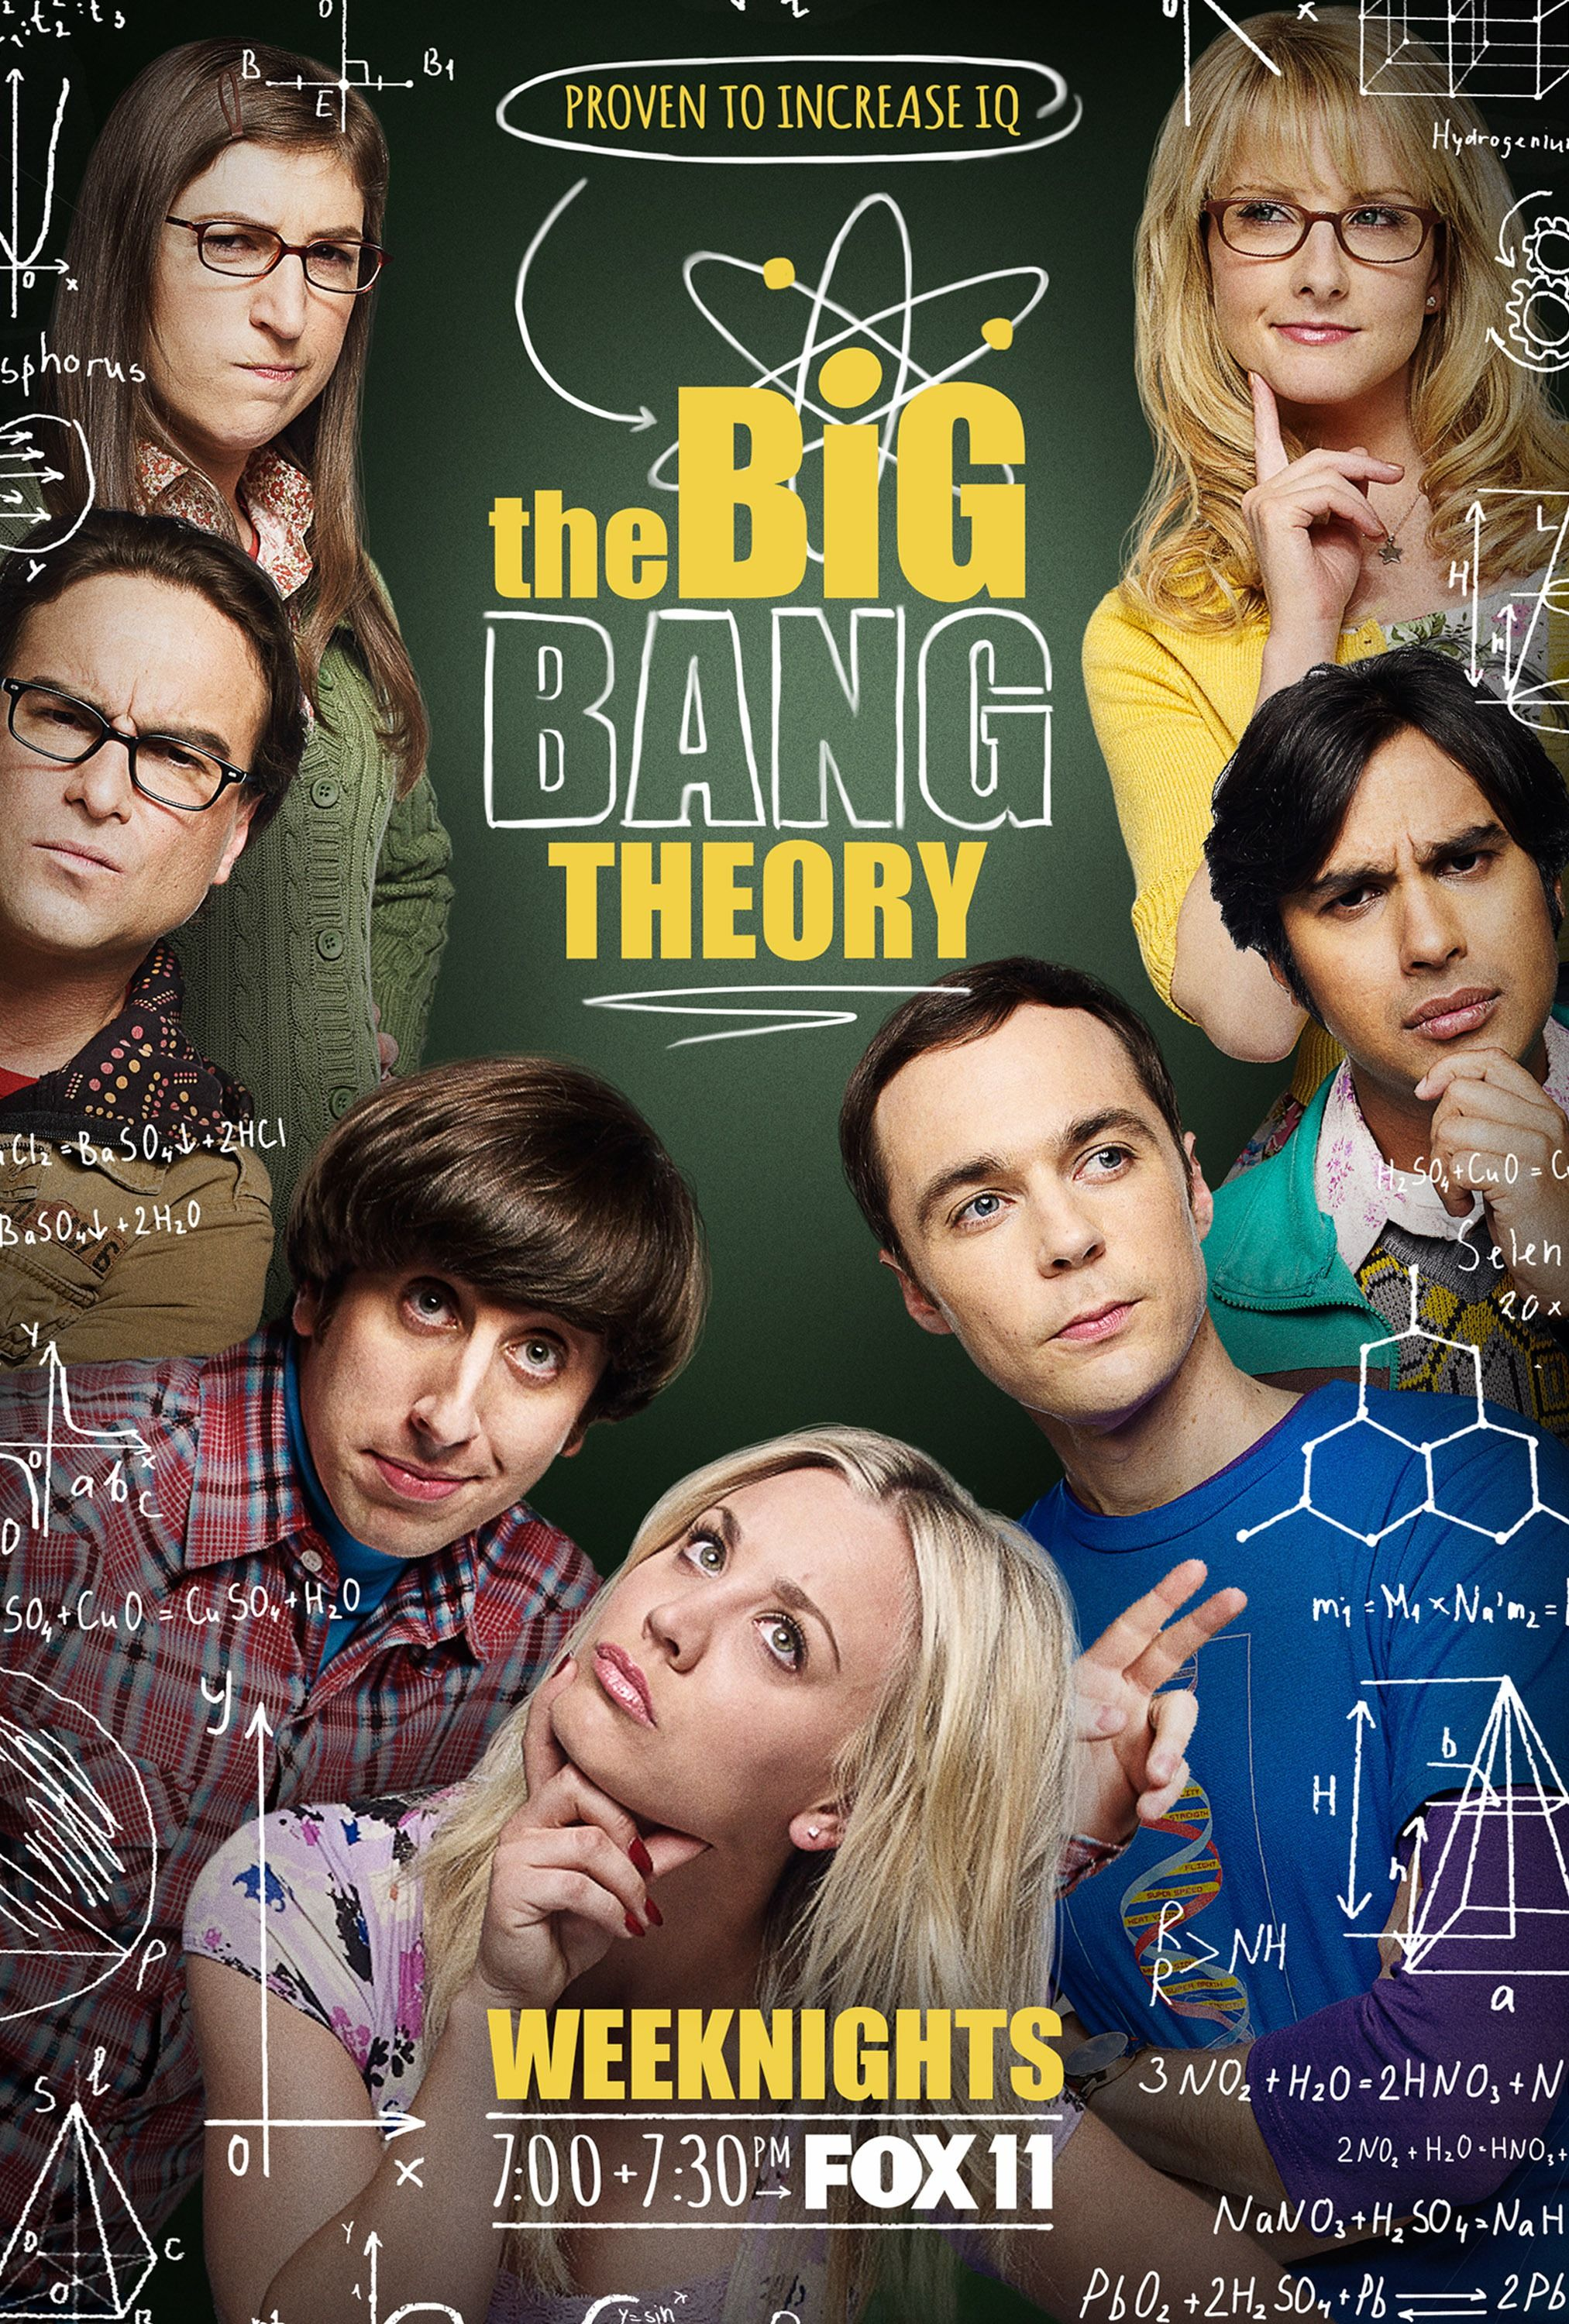 The Big Bang Theory Screenrant